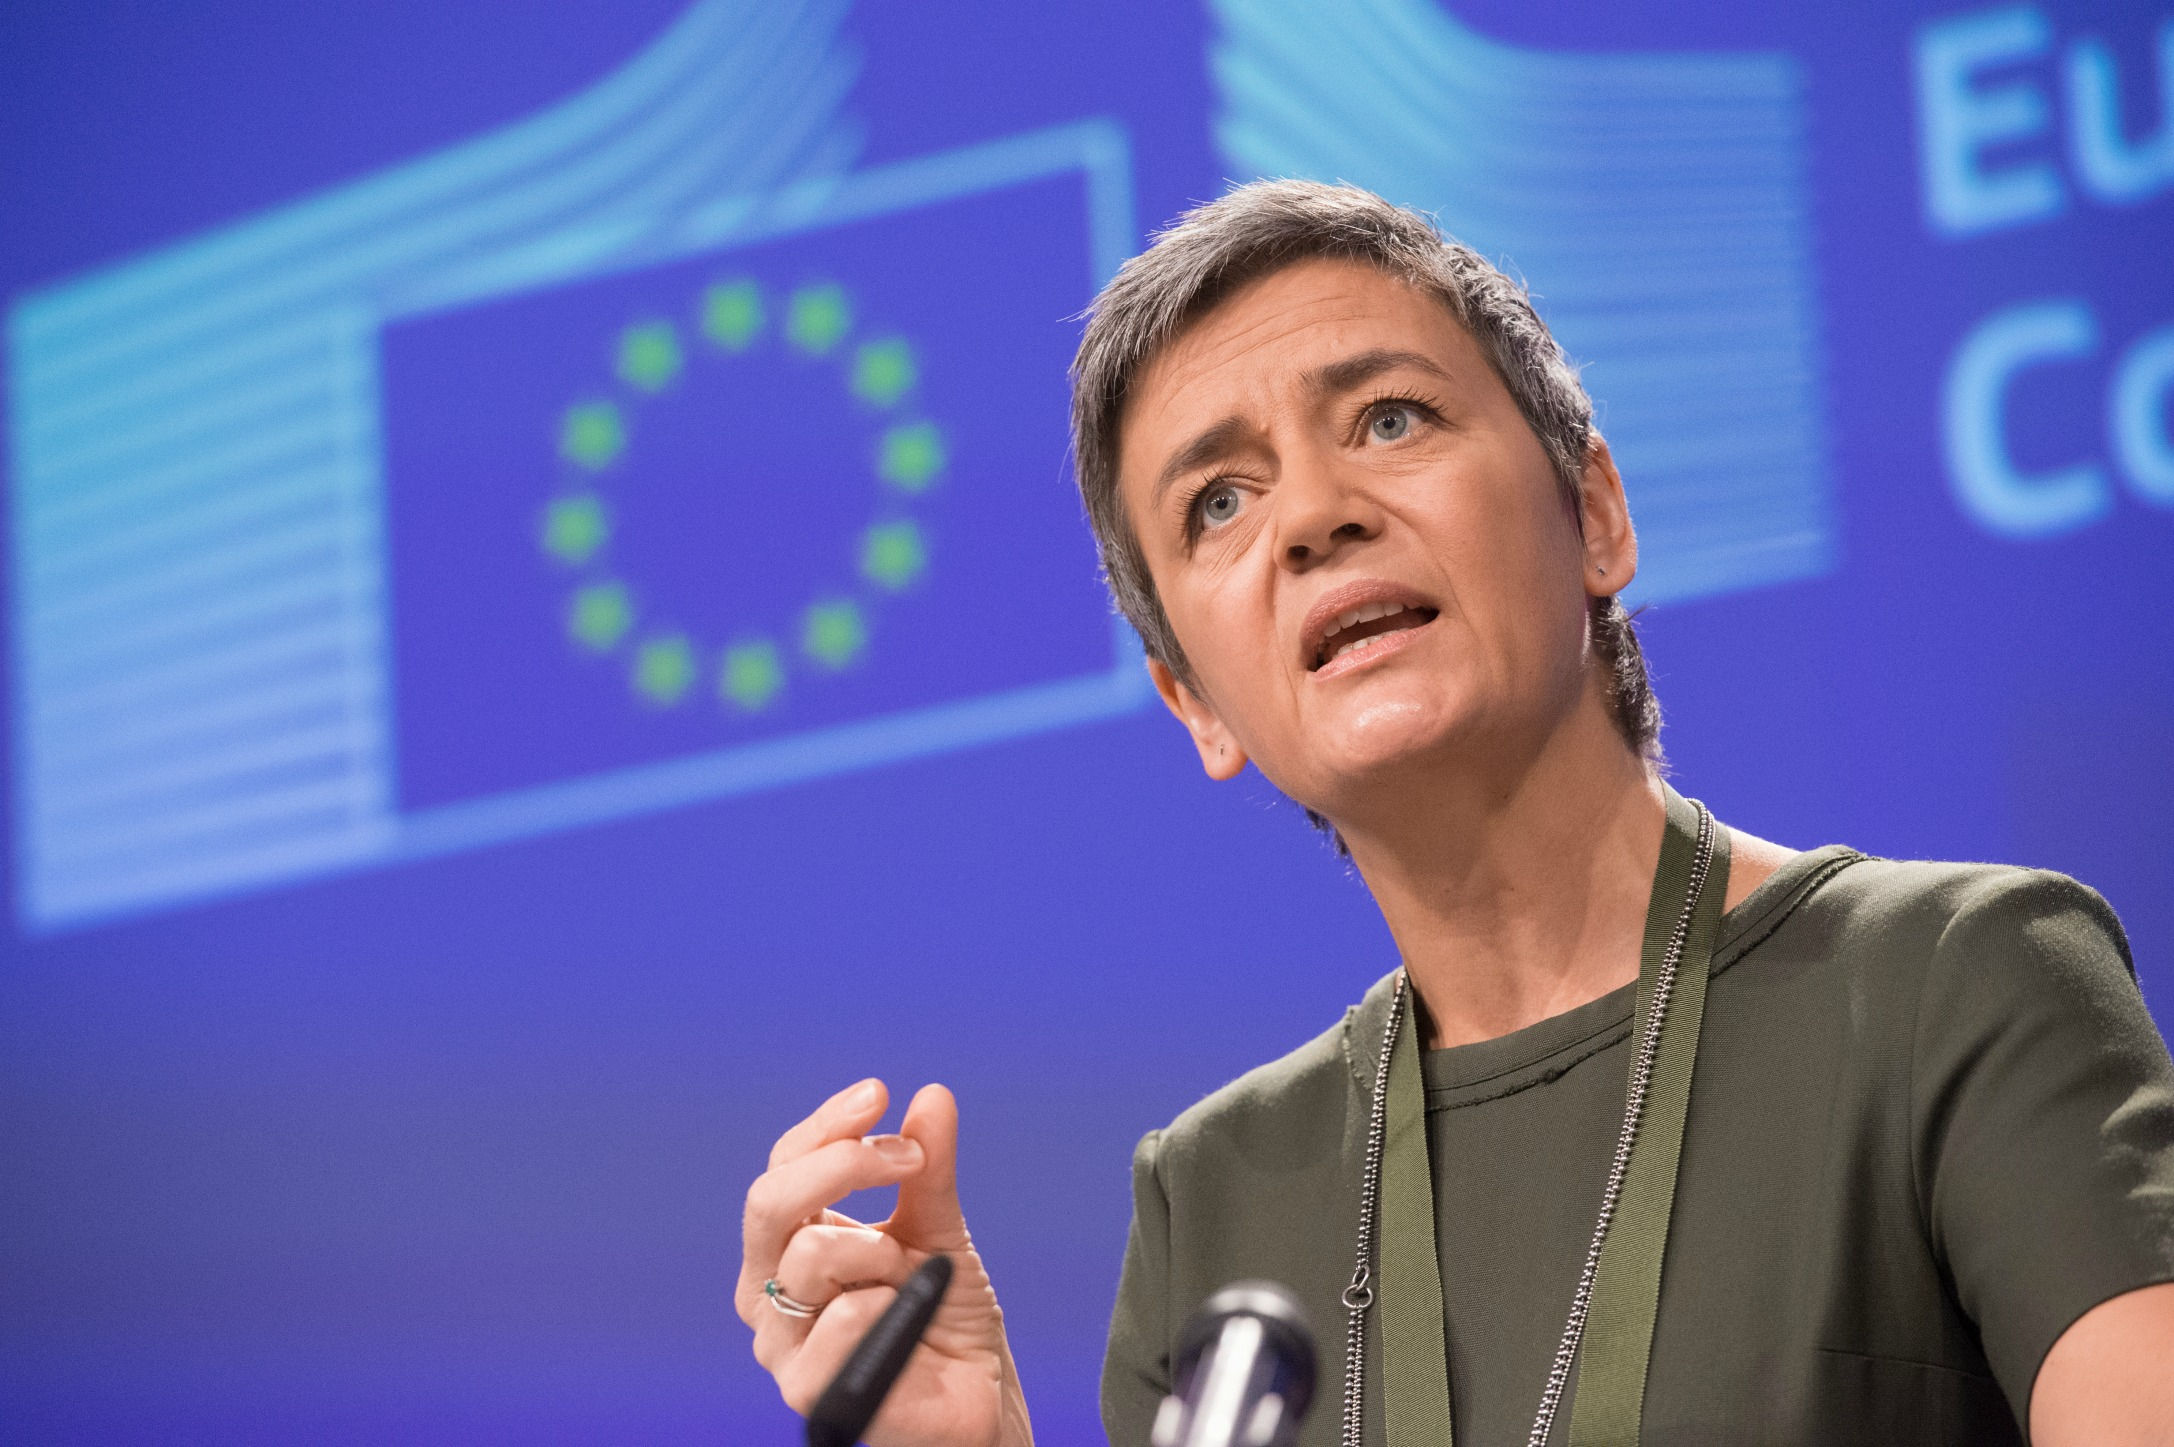 EU Applauds India's as 'Major Vaccine Producer' In Global COVID Response